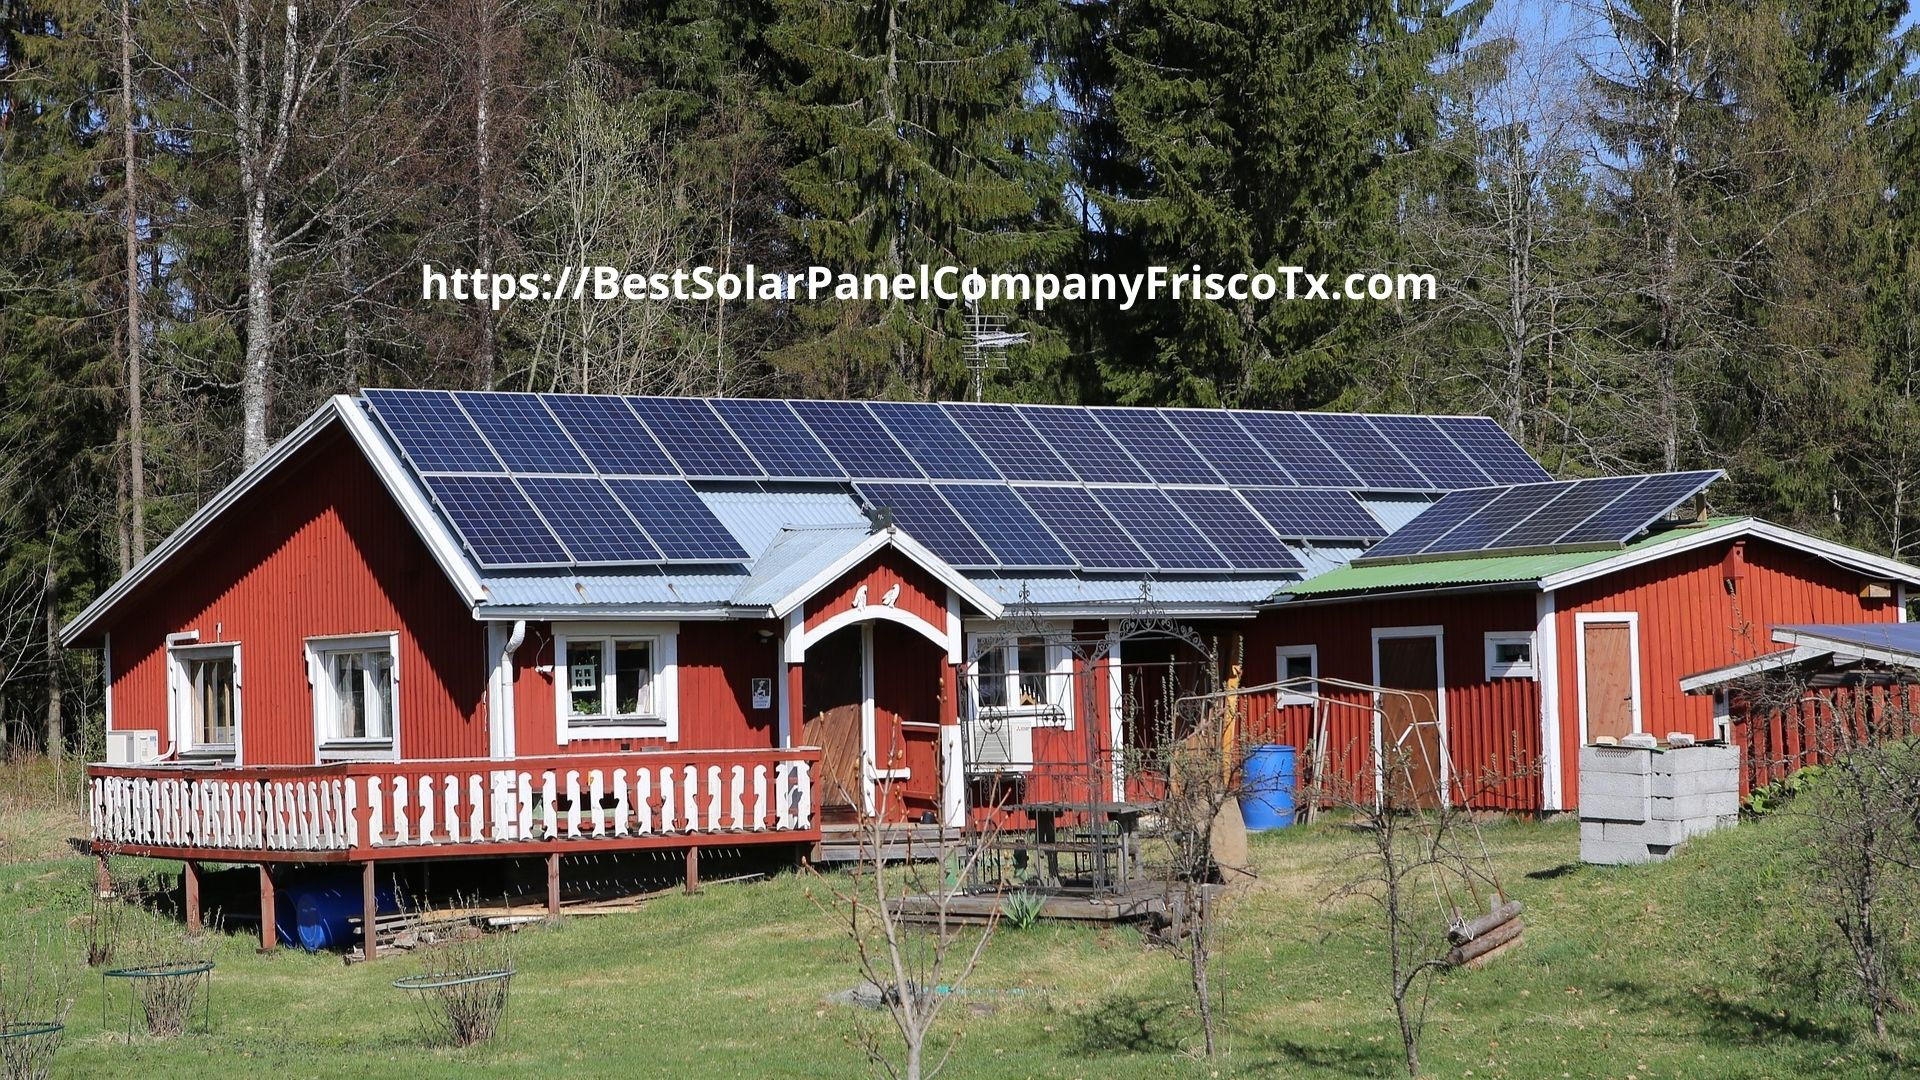 Best Solar Panel Company Frisco TX Launches New Website with Contemporary Design, Crisp Visuals